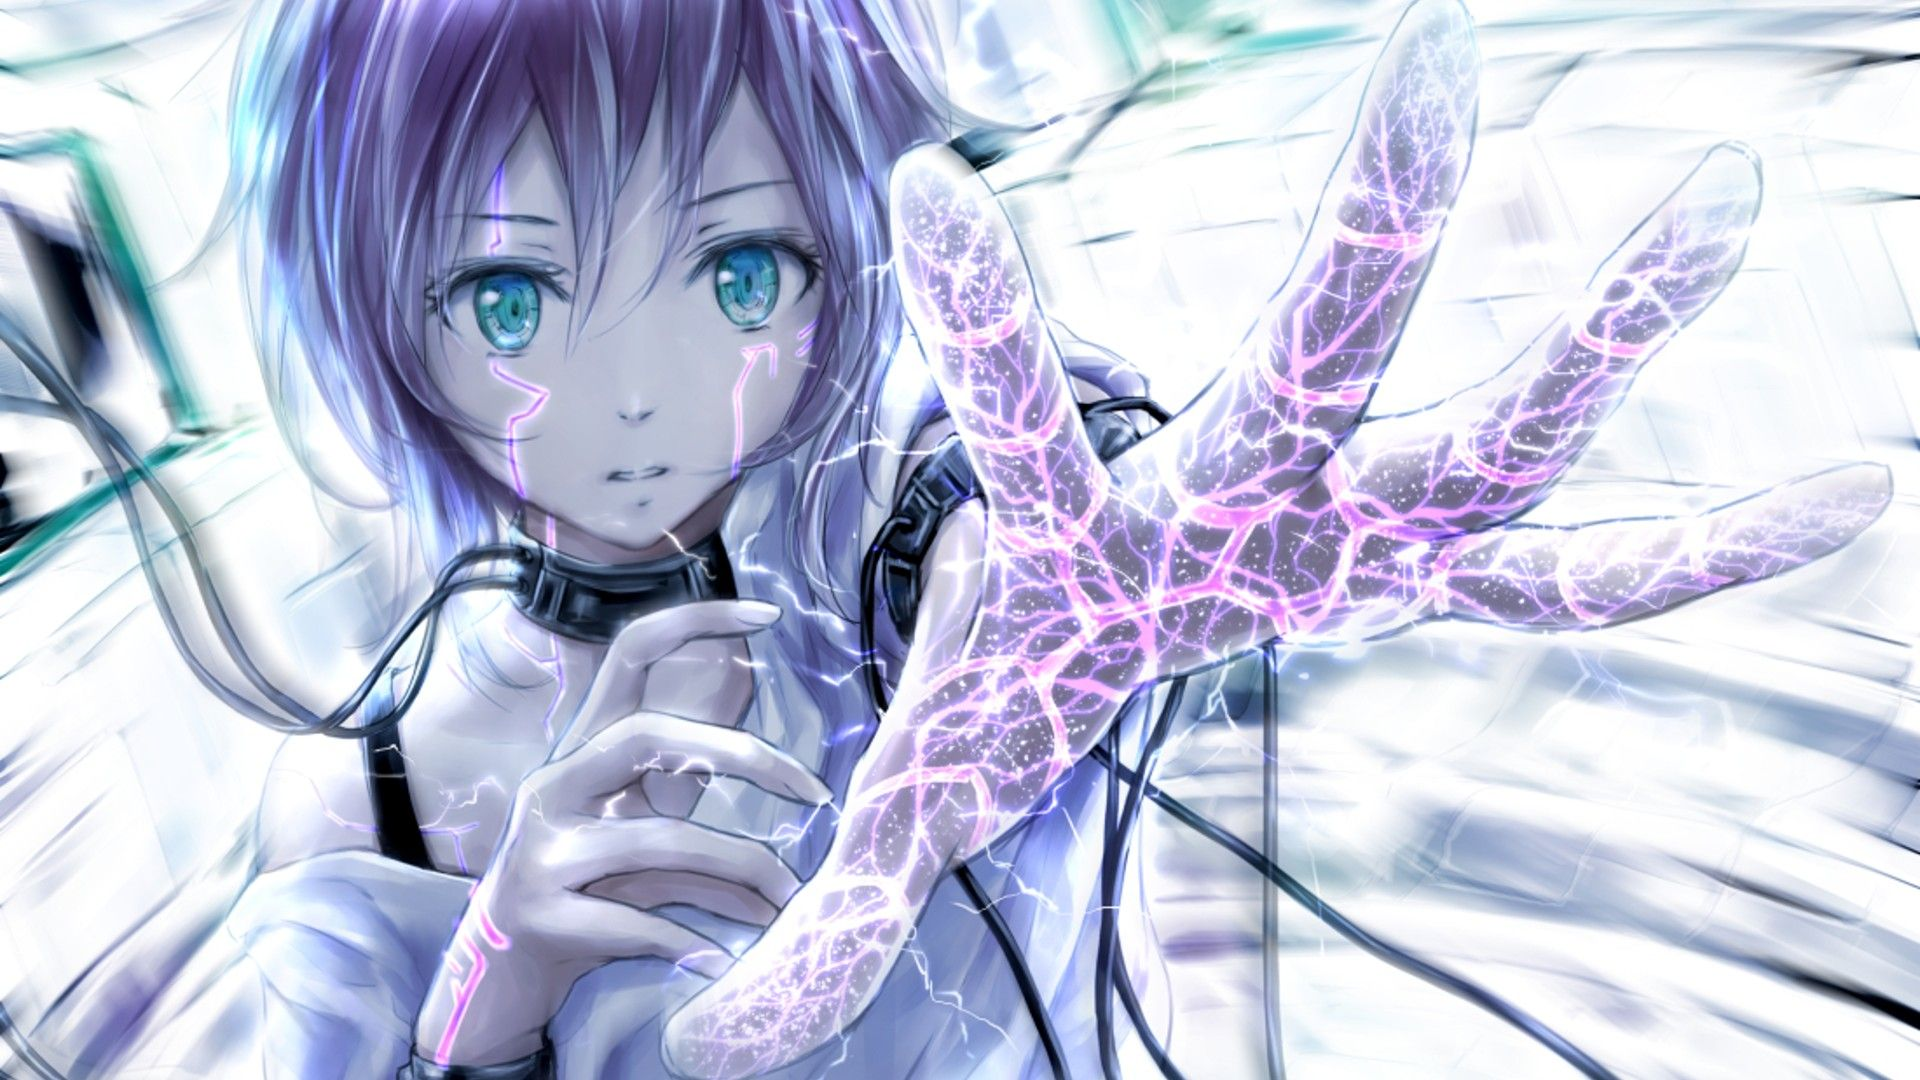 1920x1080 Anime Girls wallpaper ·① Download free beautiful backgrounds for ...